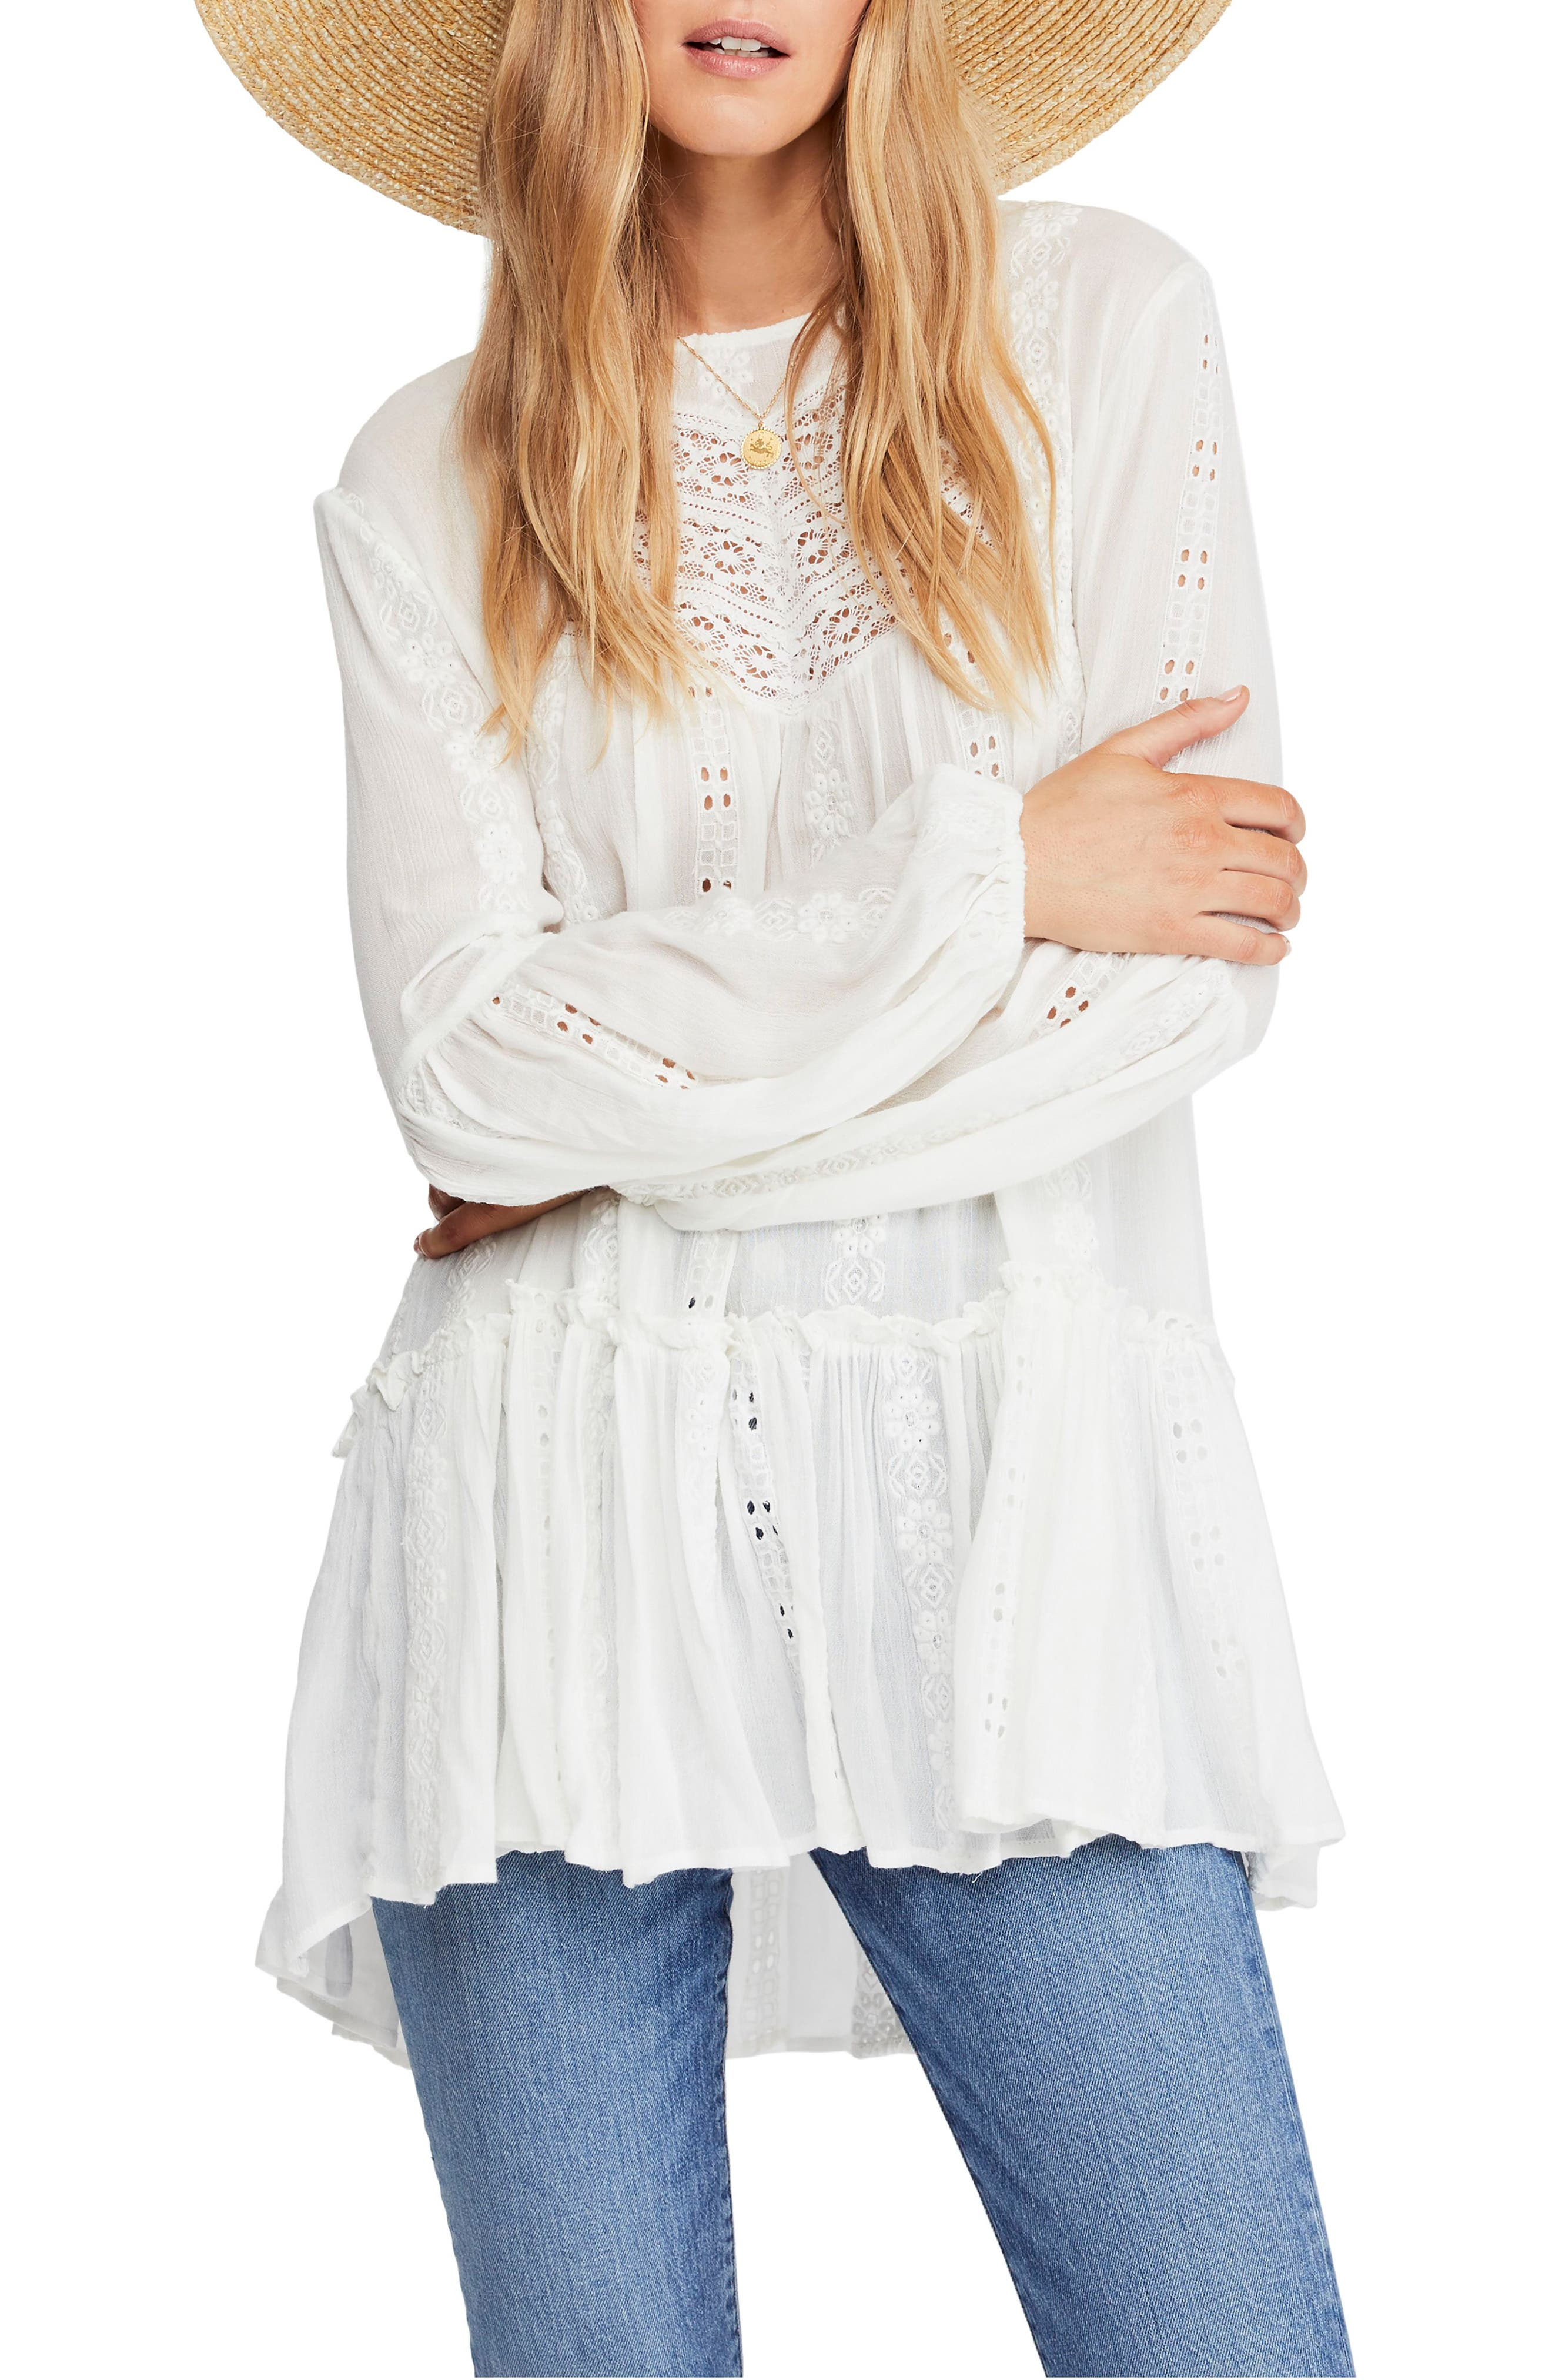 FREE PEOPLE Kiss Kiss Tunic, Main, color, 103